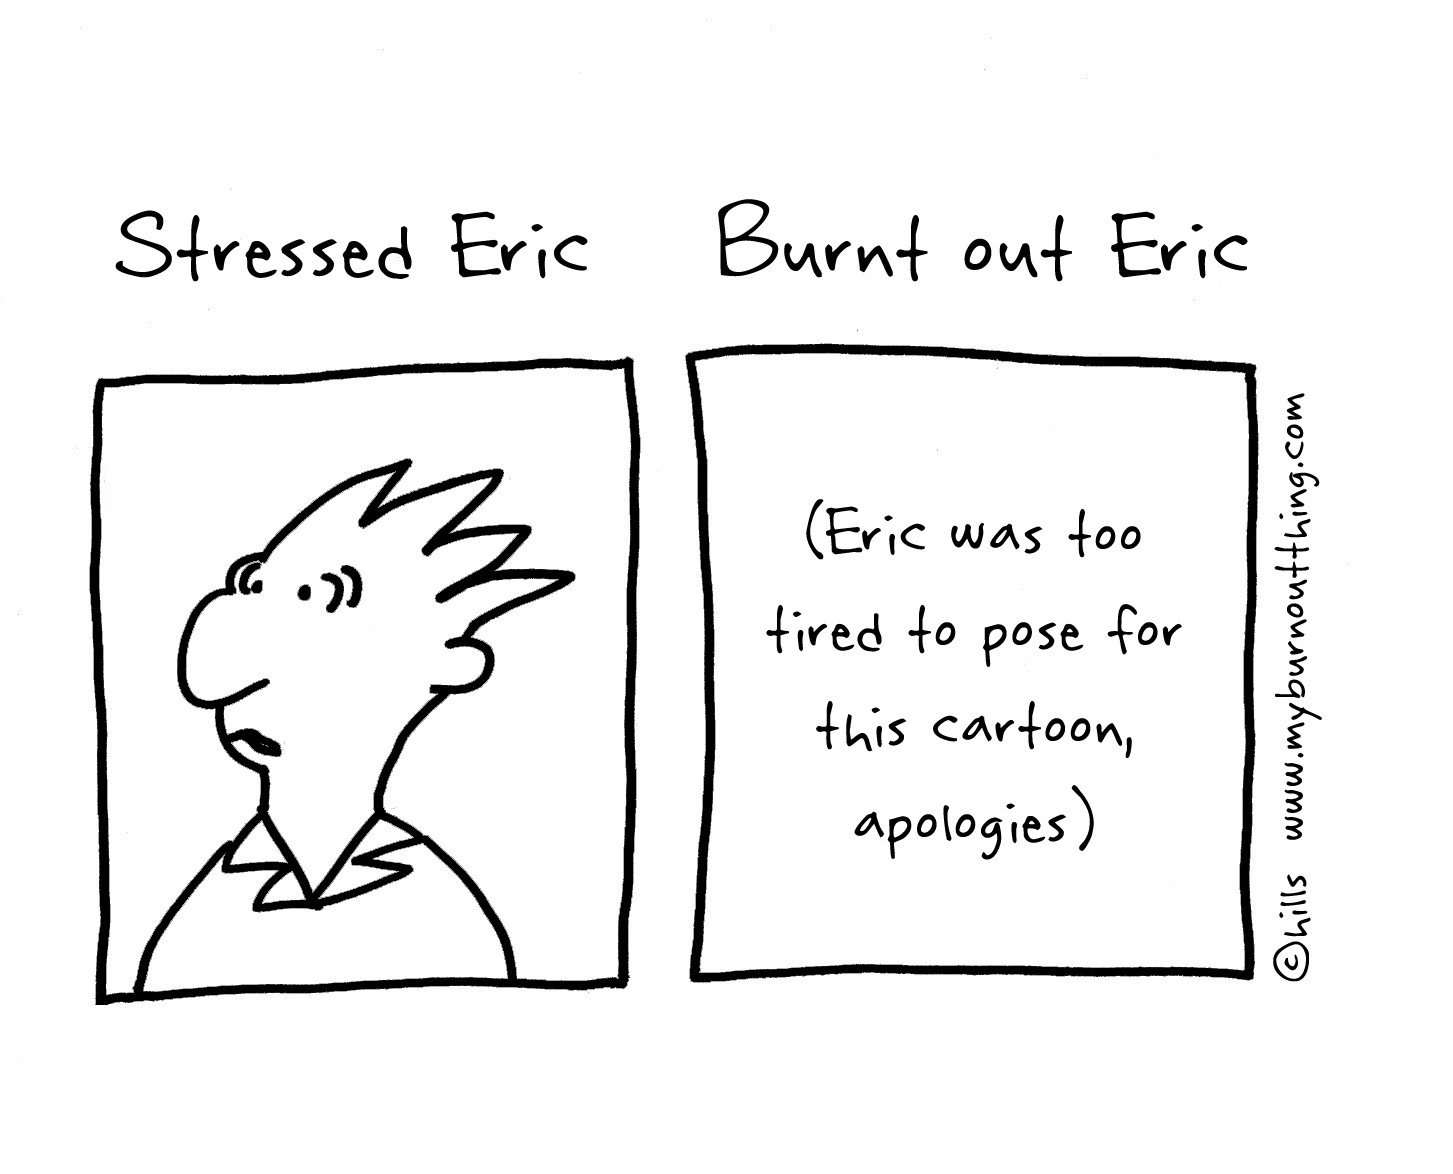 How to enjoy your work rather than stressing about it?